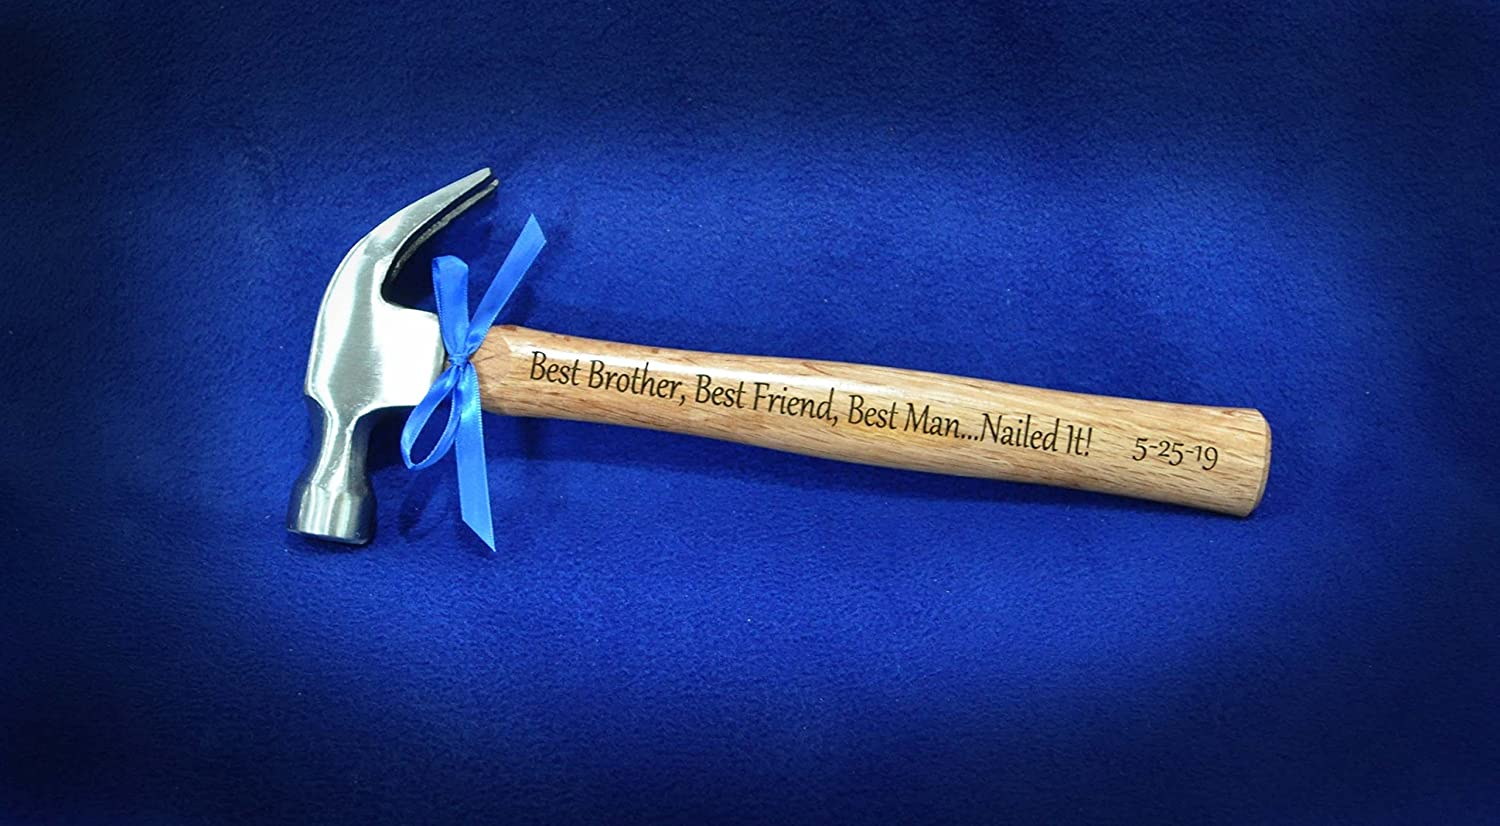 Amazon Com Best Man Gifts Best Man Groomsmen Gifts Personalized Best Man Gifts Wedding Gifts Free Shipping Best Brother Gift Gift For Brother Wedding Gift For Brother Nailed It Handmade,Spring Painting Ideas For Kids